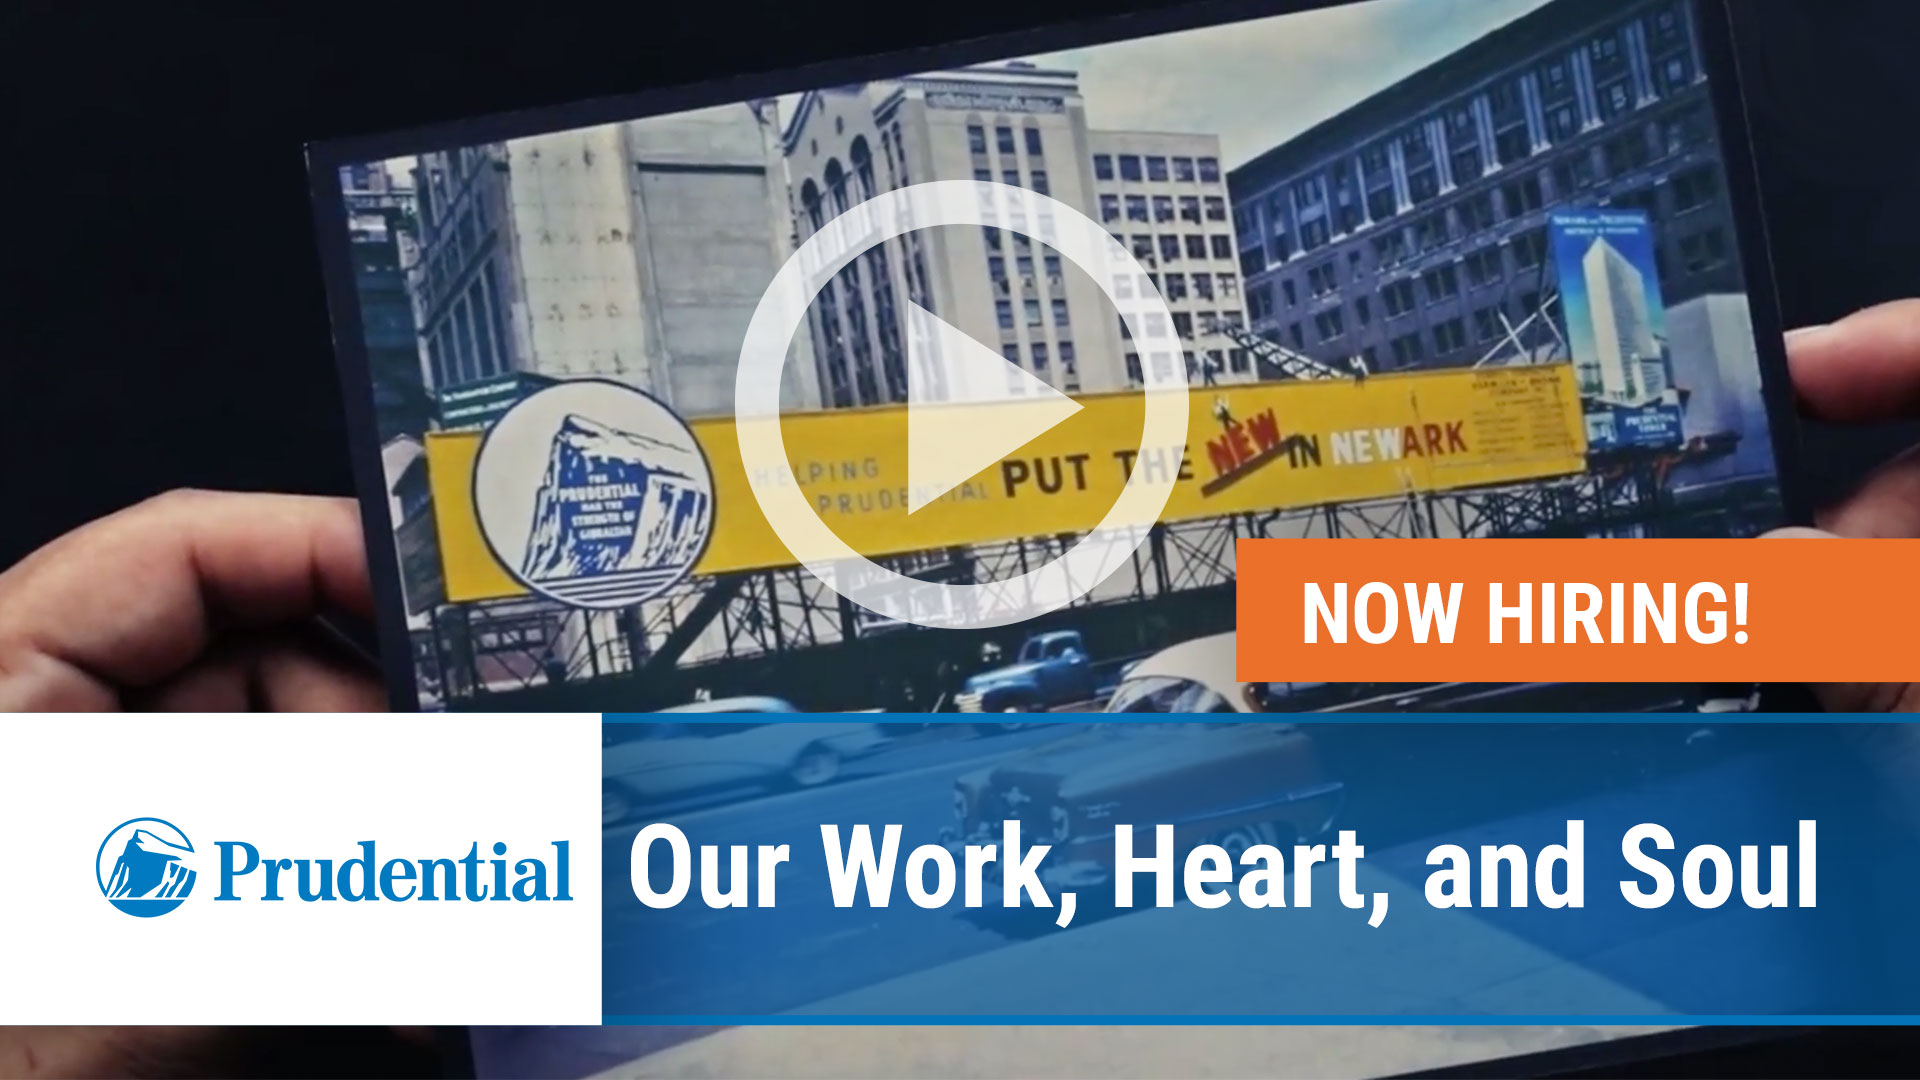 Watch our careers video for available job opening Our Work, Heart, and Soul in Newark,  NJ